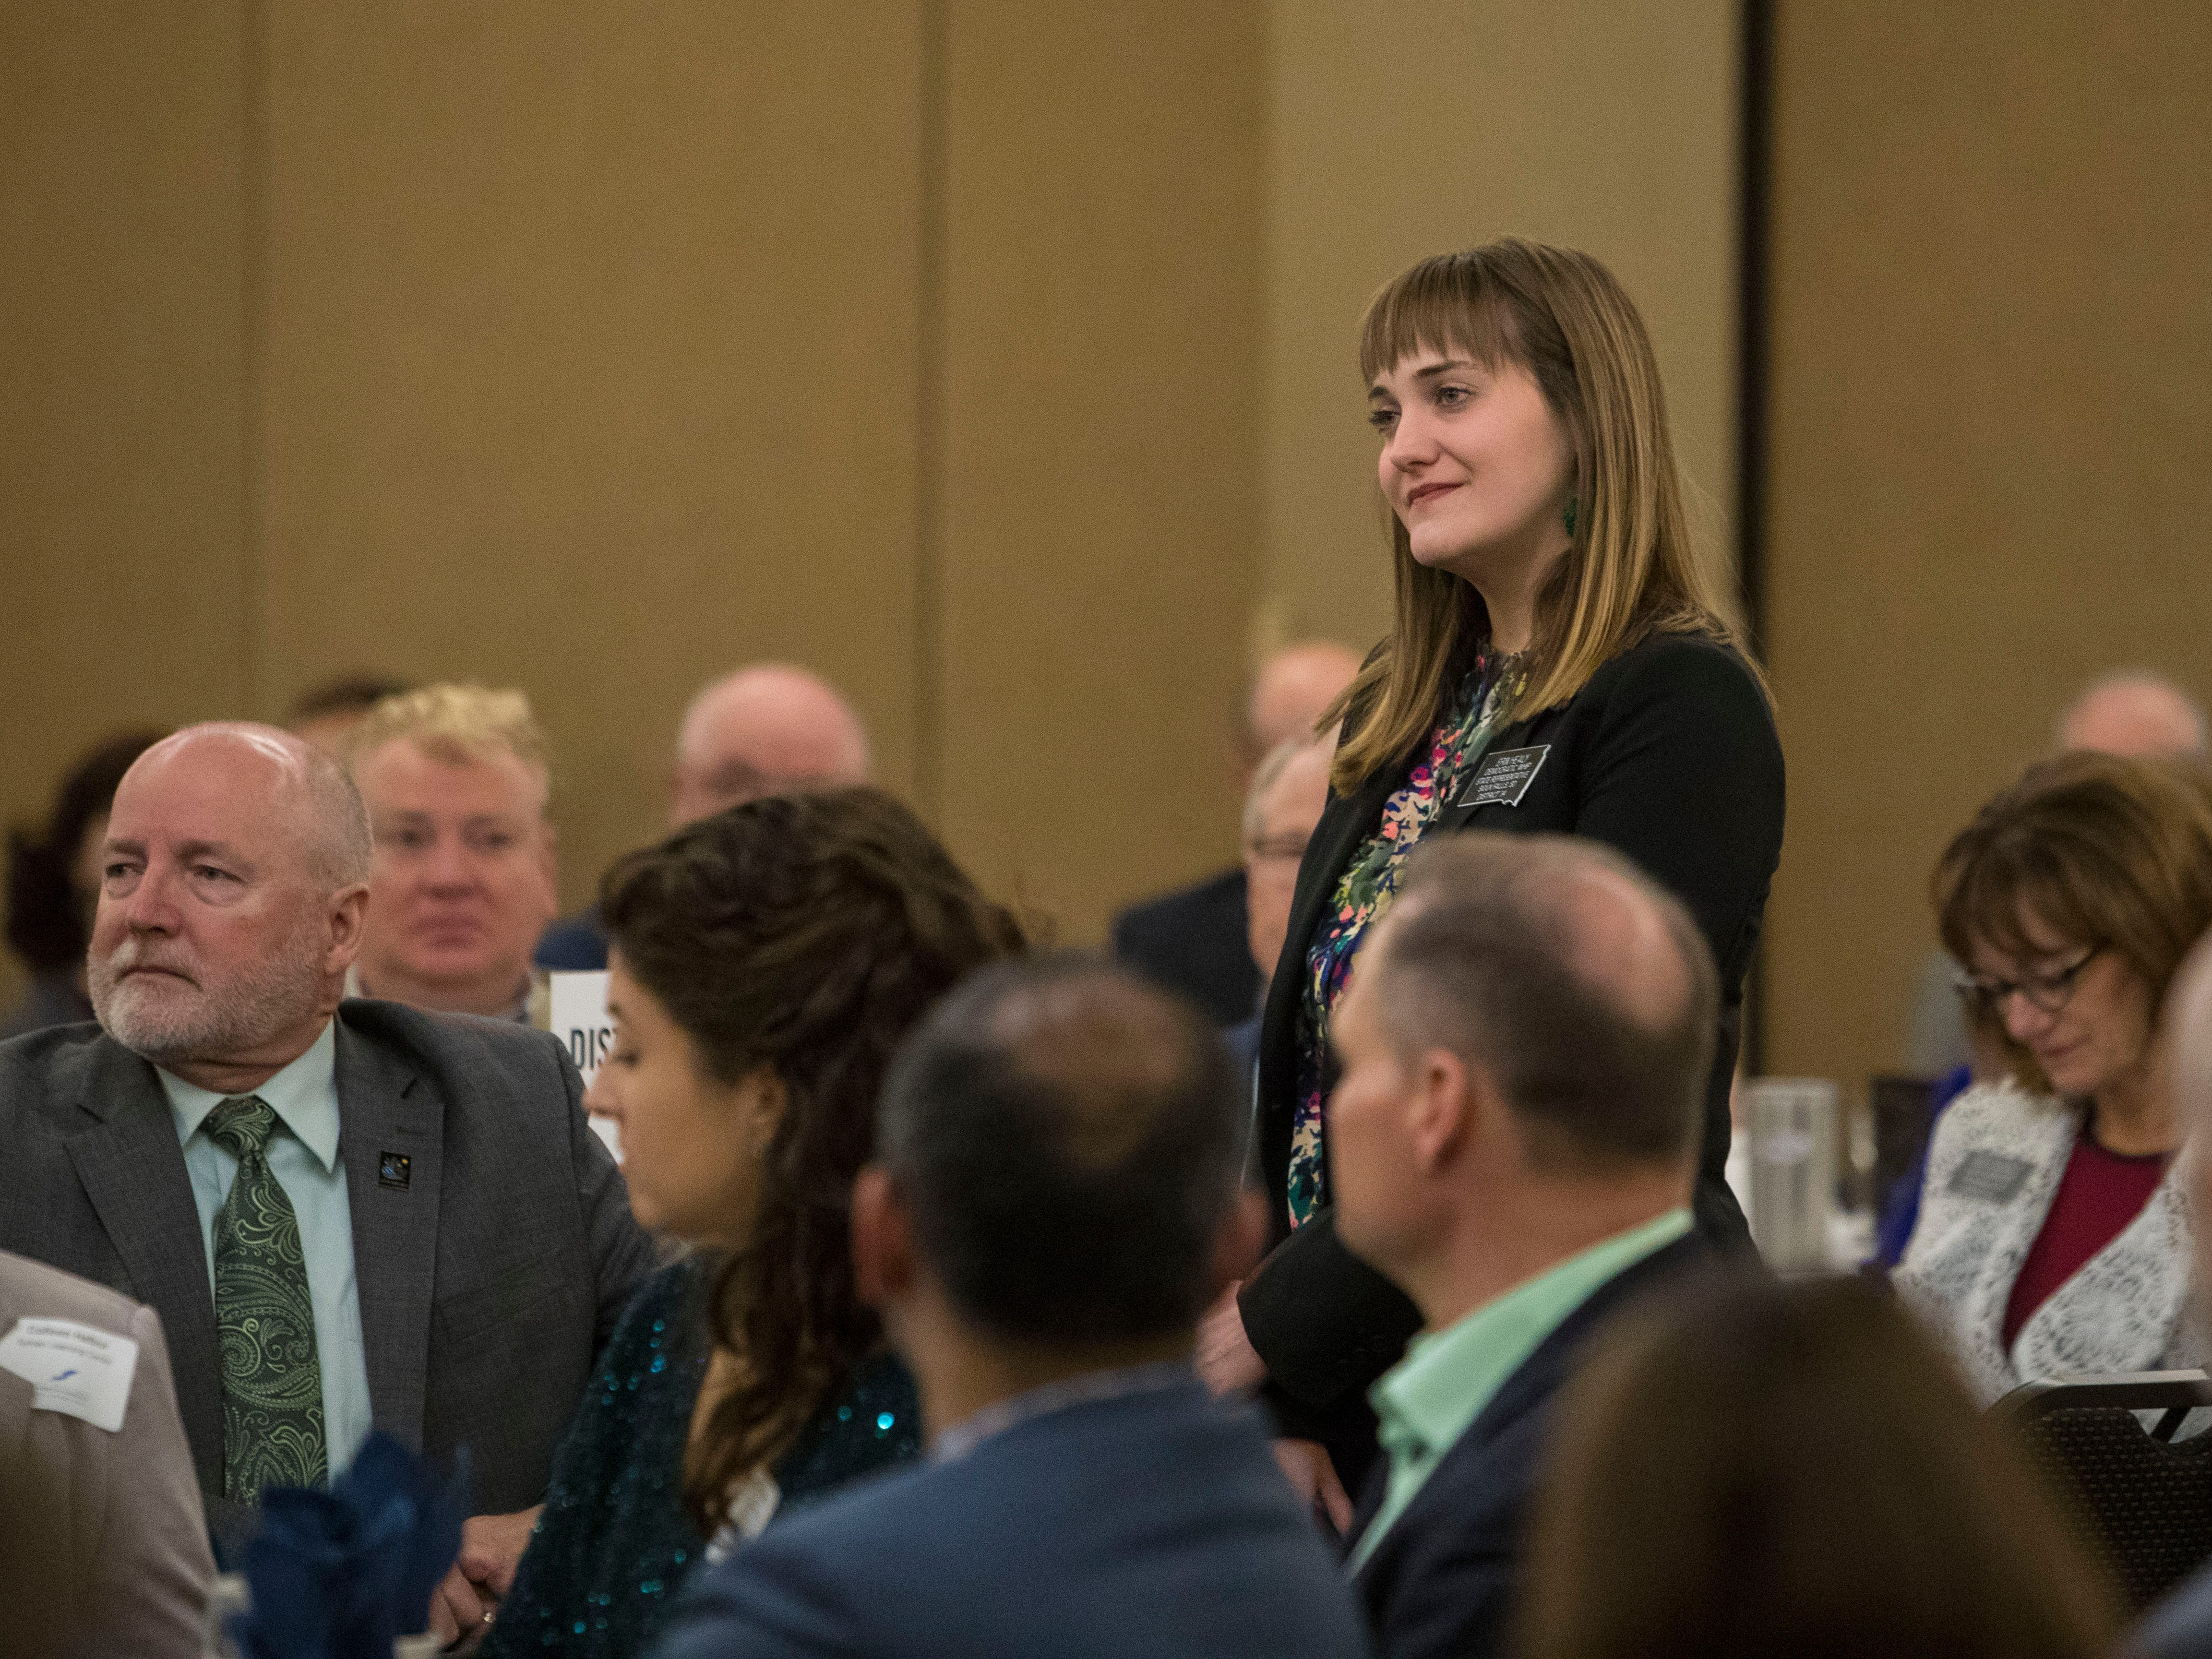 Rep. Erin Healy, District 14, speaks at the Chamber of Commerce legislative breakfast, Thursday, Jan. 3, 2019 at the Best Western Plus Ramkota Hotel in Sioux Falls, S.D.